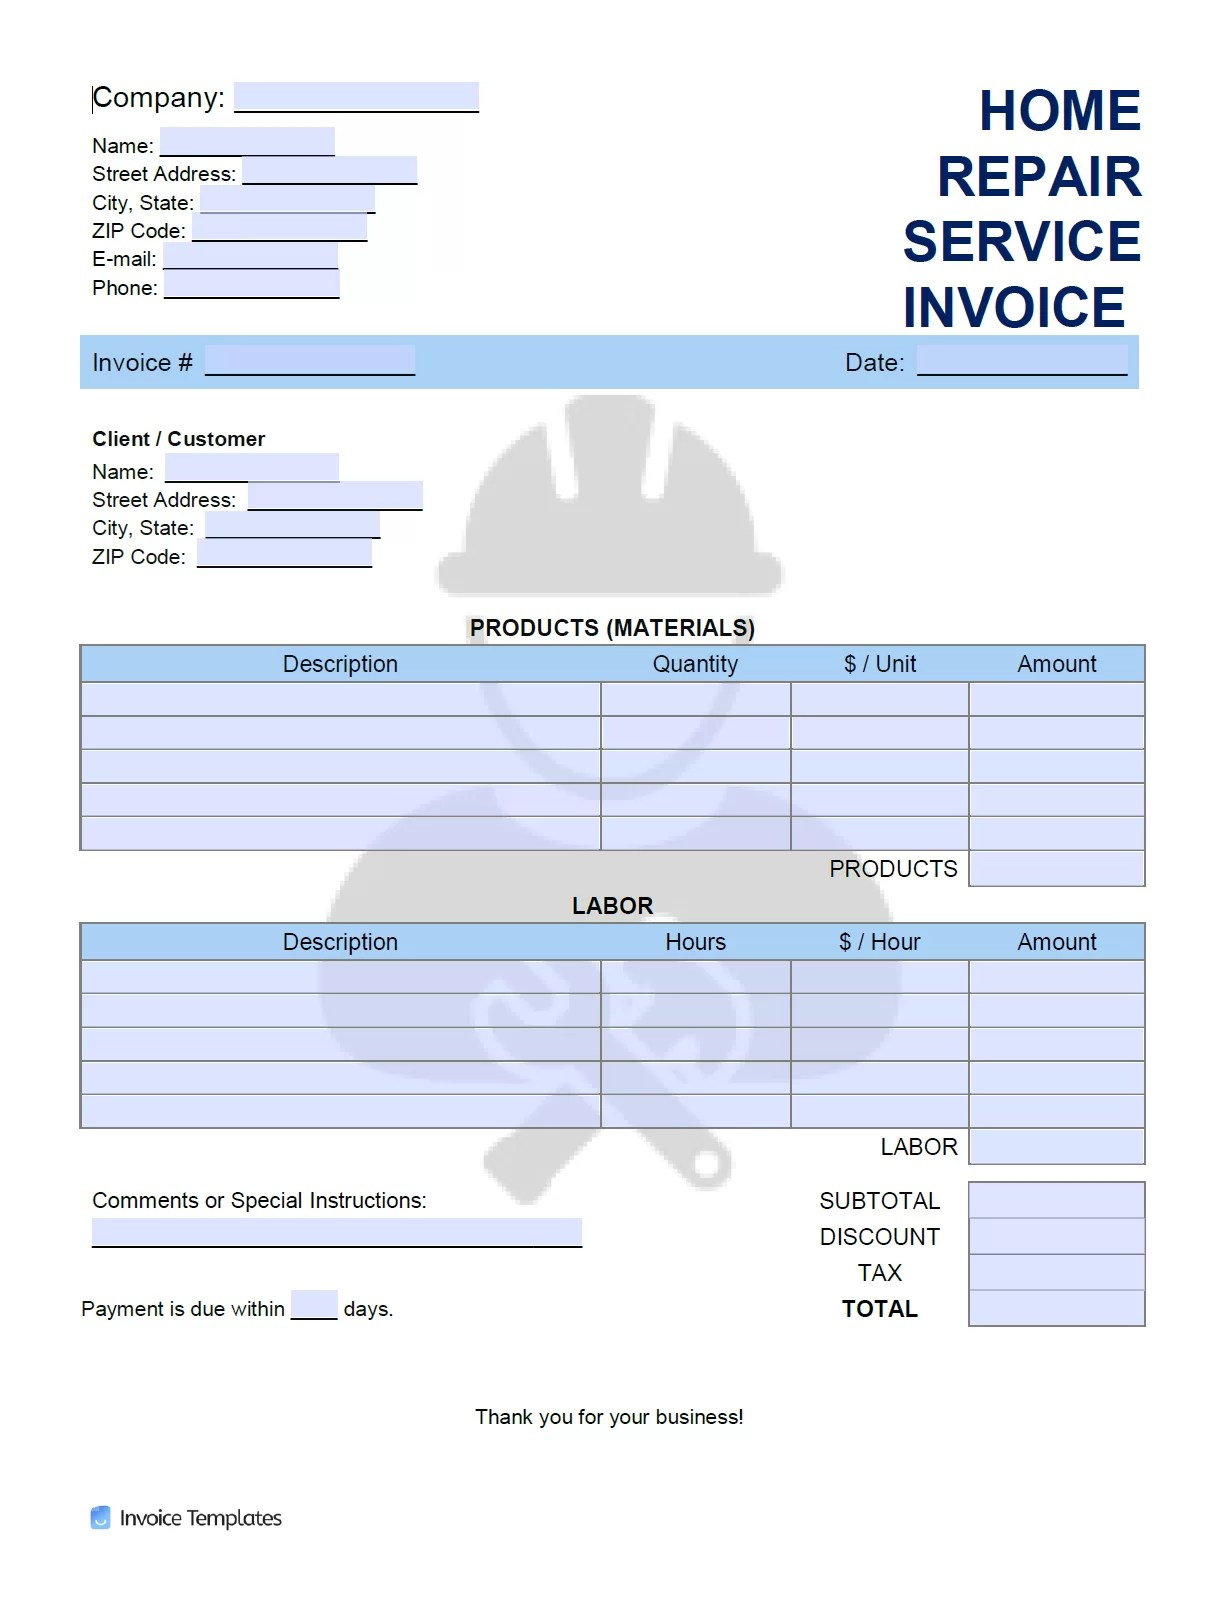 Free Home Repair Service Invoice Template